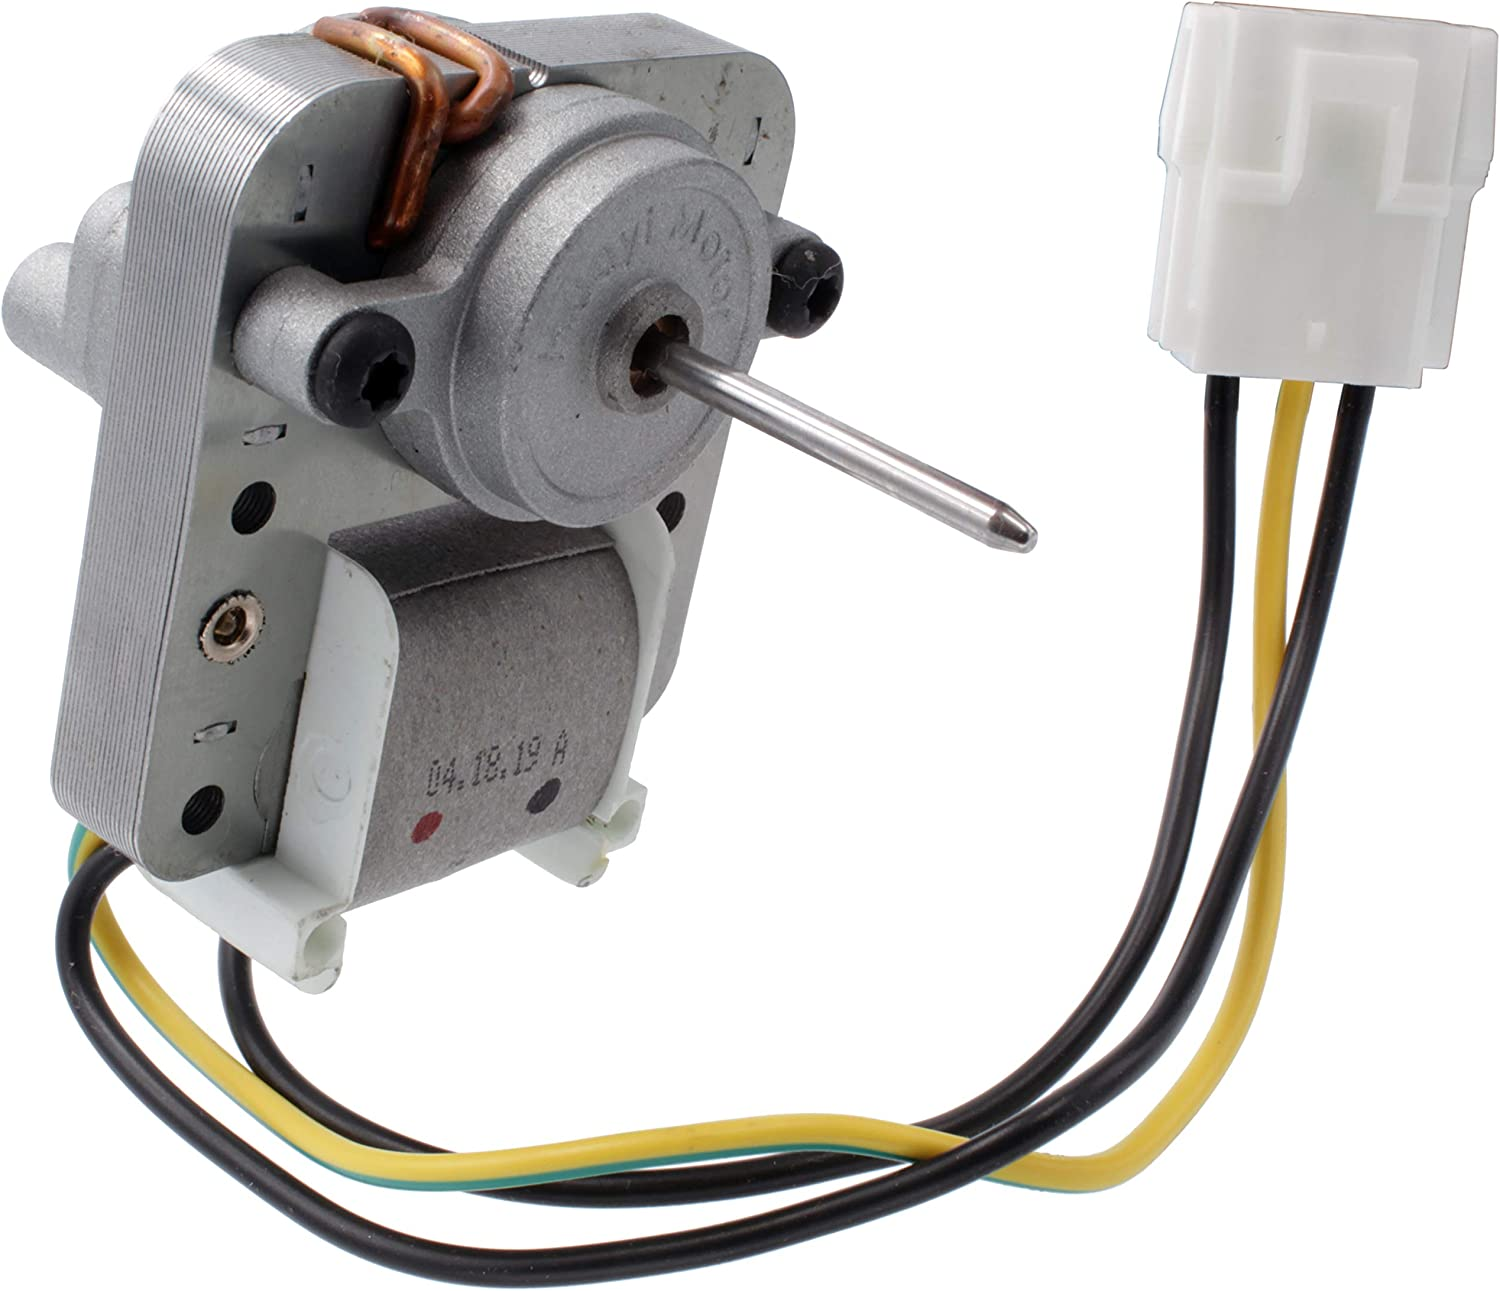 Supplying Demand 297250000 Refrigerator Evaporator Fan Motor Compatible With Frigidaire Fits 1483843, 216914200